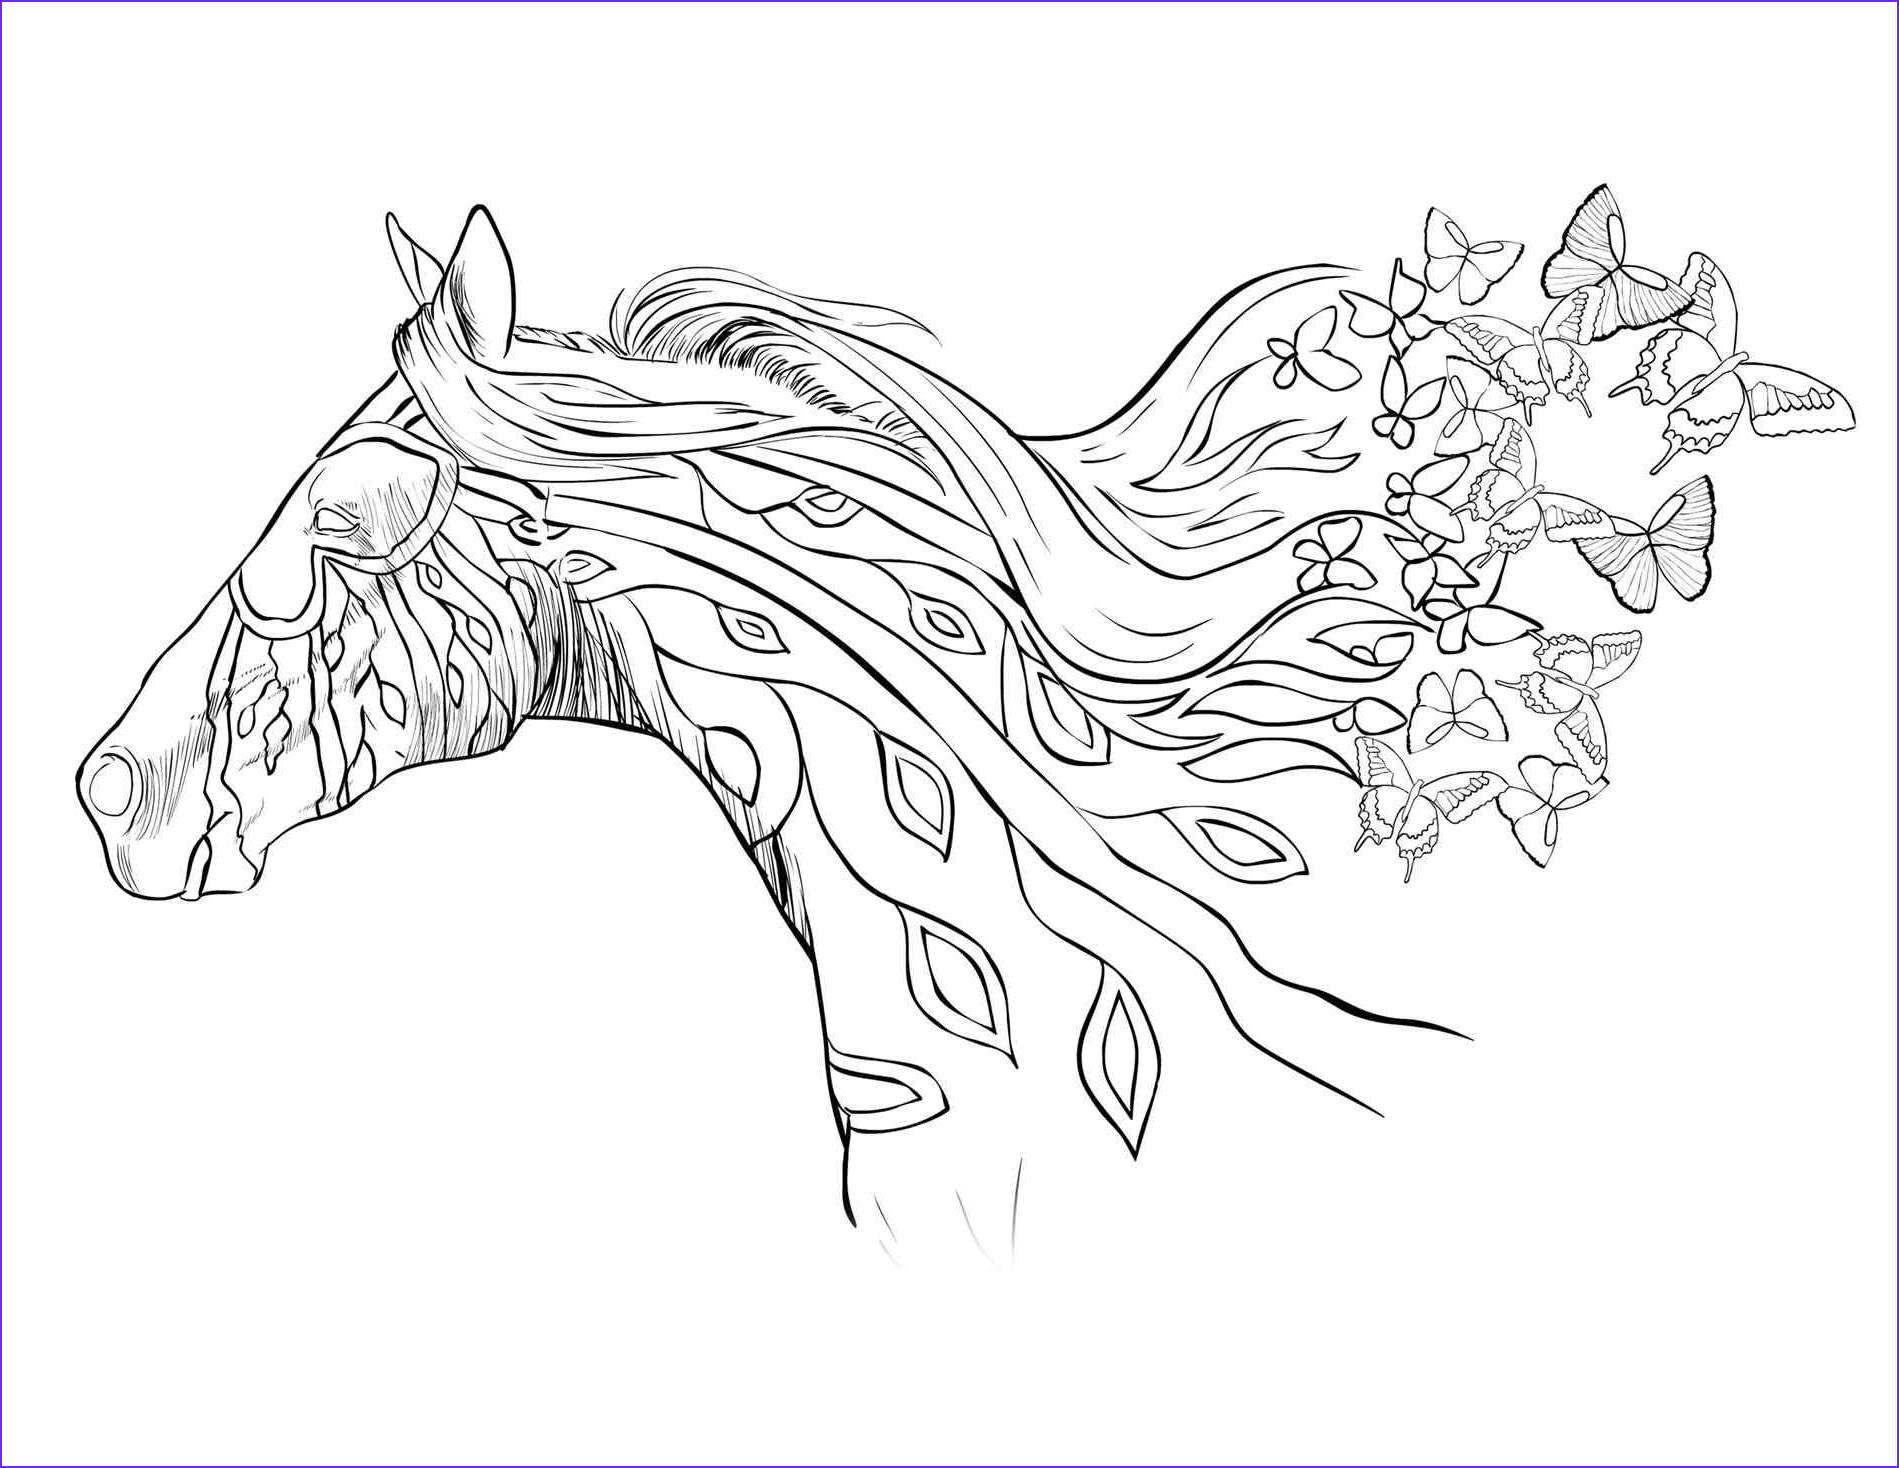 Adult Horse Coloring Book Beautiful Gallery Coloring Pages for Adults Horses at Getcolorings